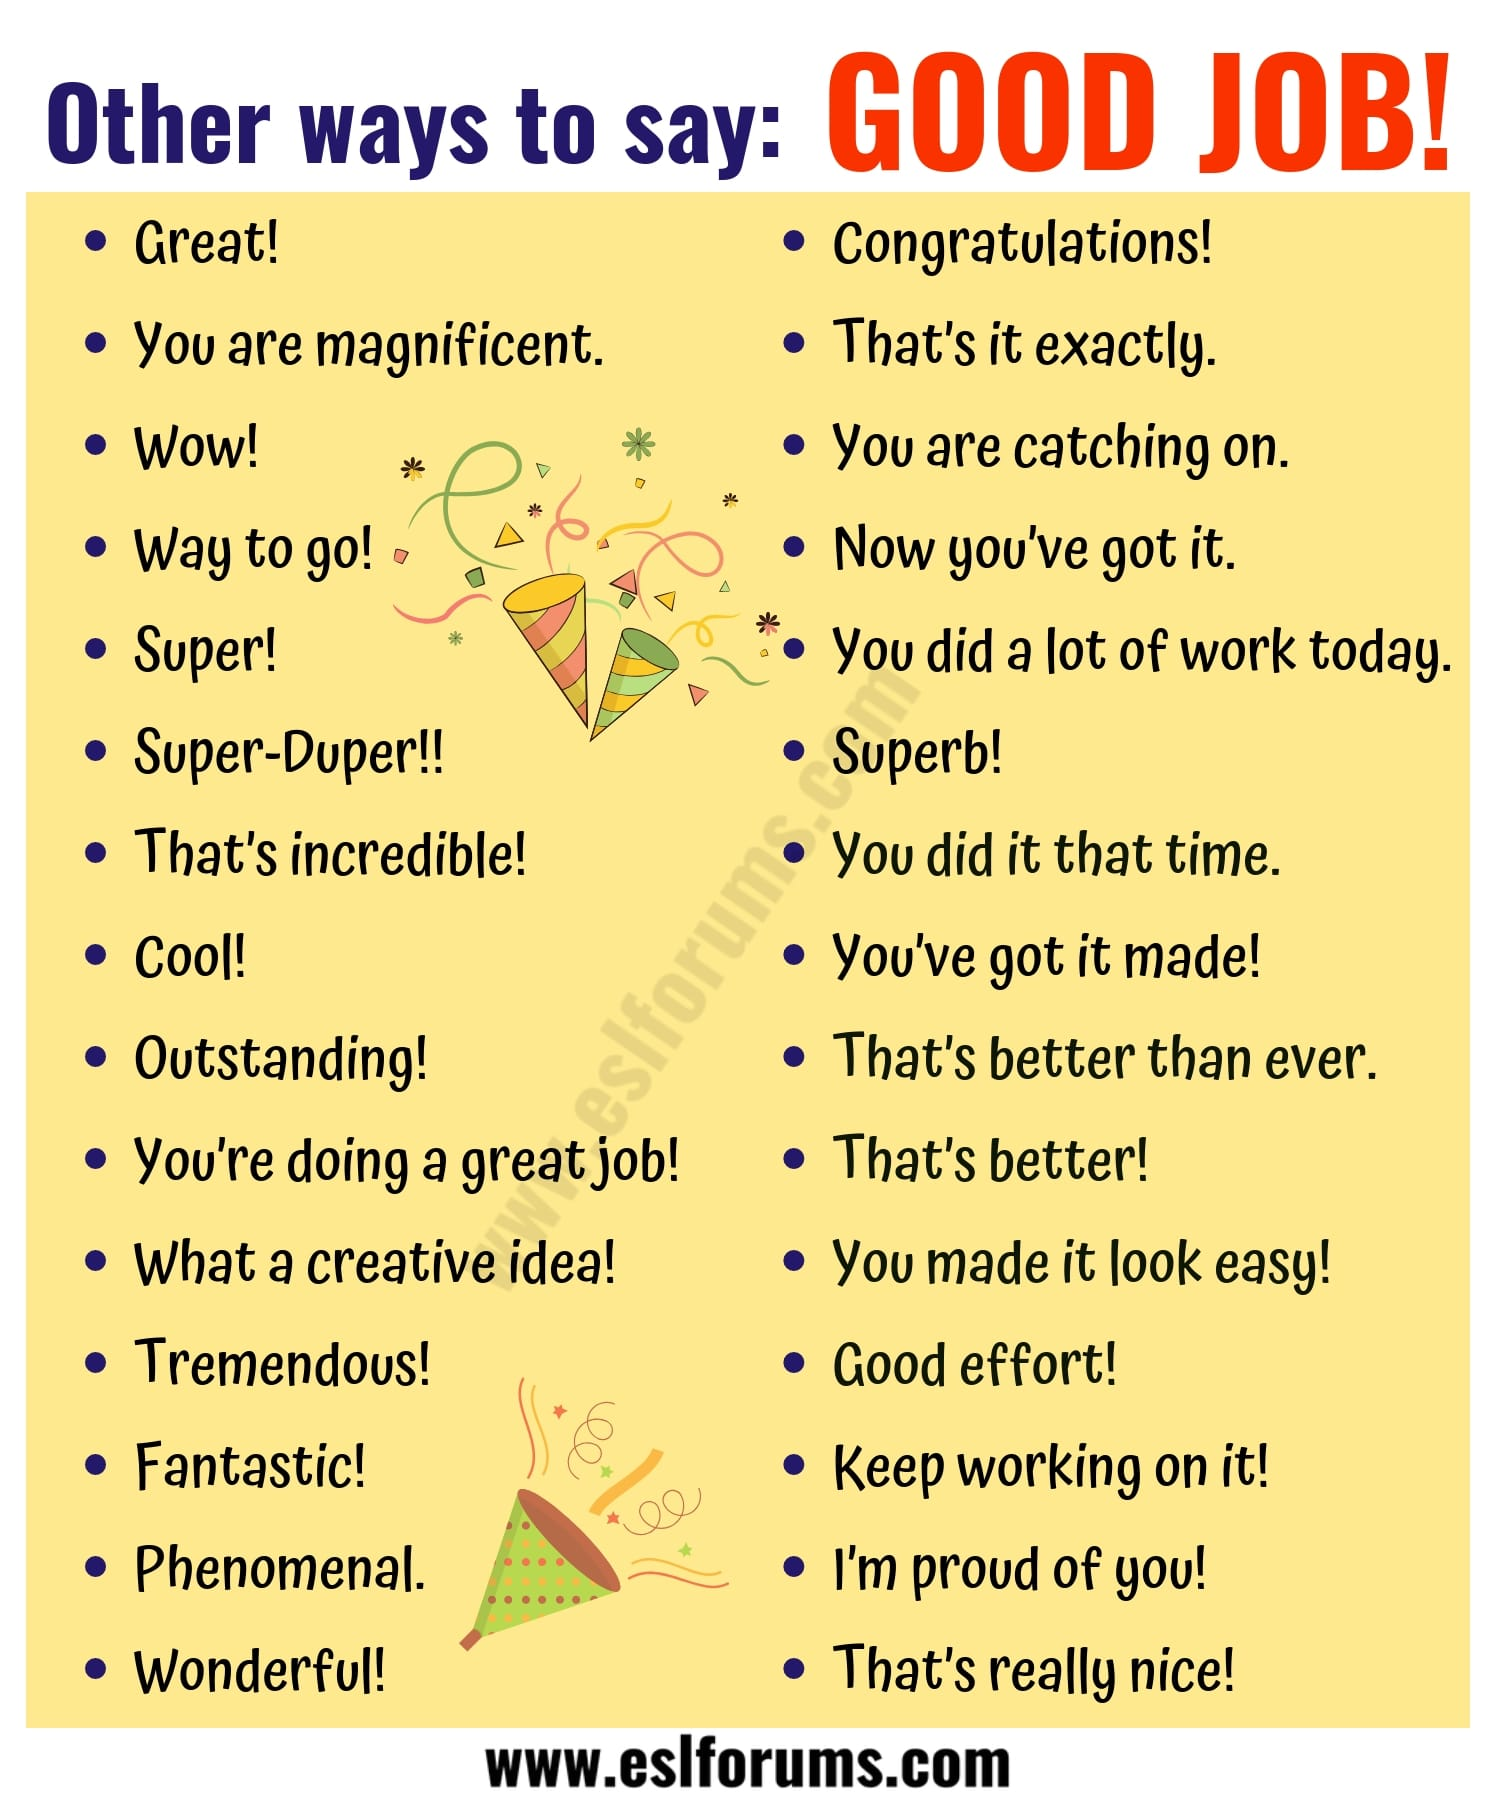 GOOD JOB Synonym: 48 Fantastic Ways to Say GOOD JOB!